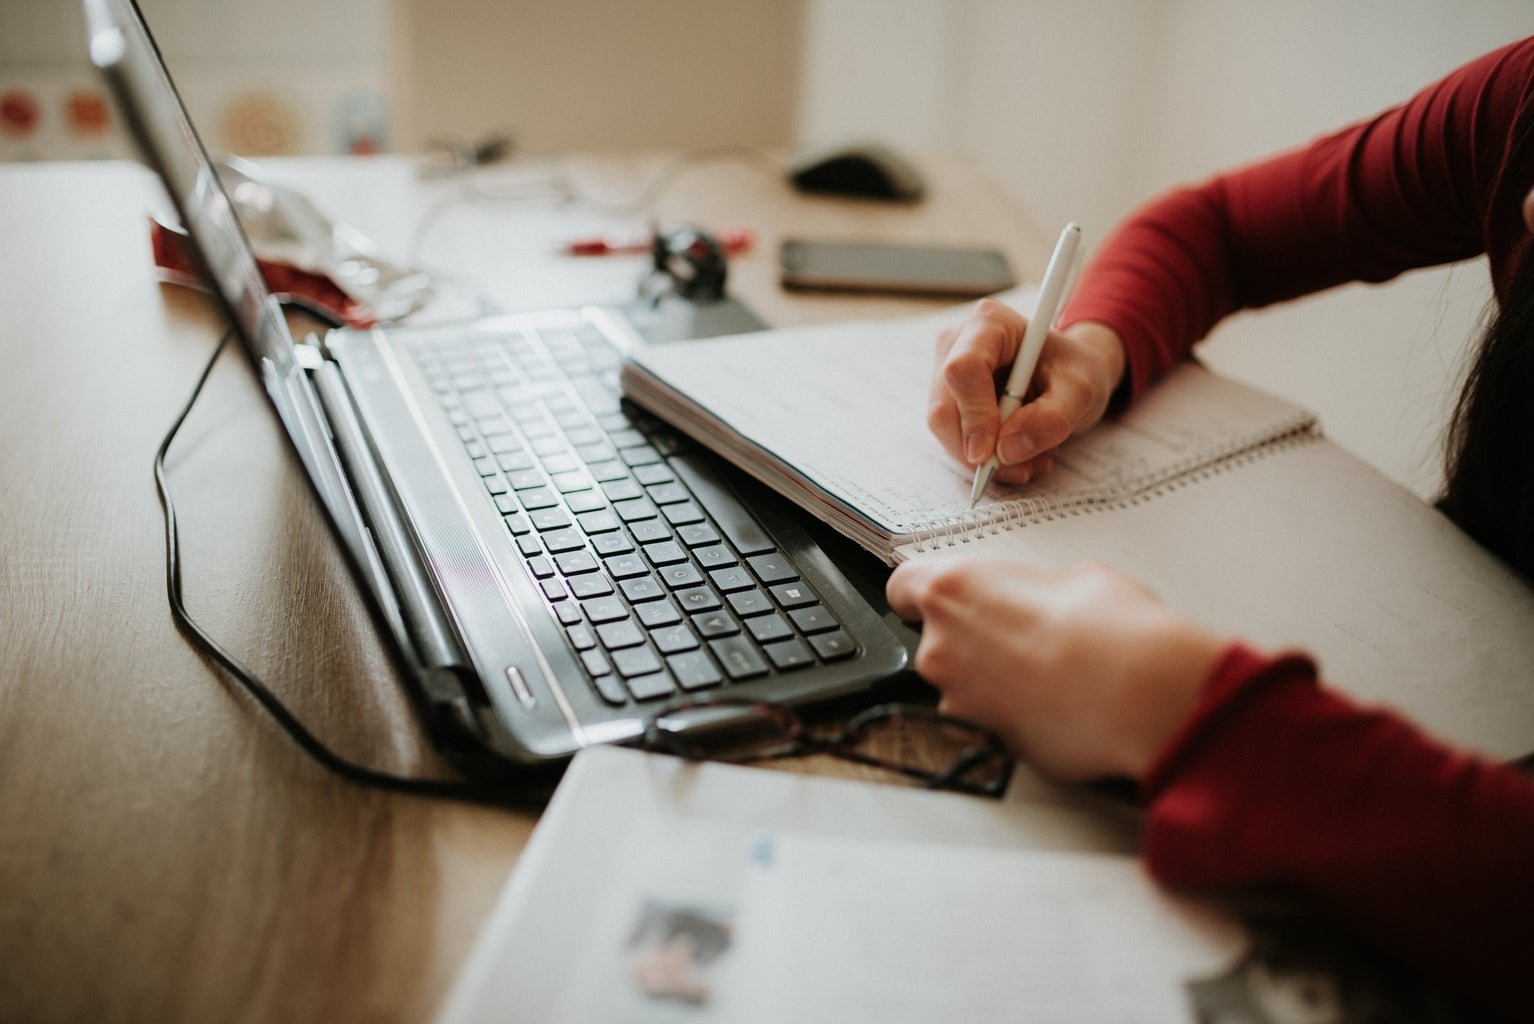 woman writing in a notebook with laptop nearby